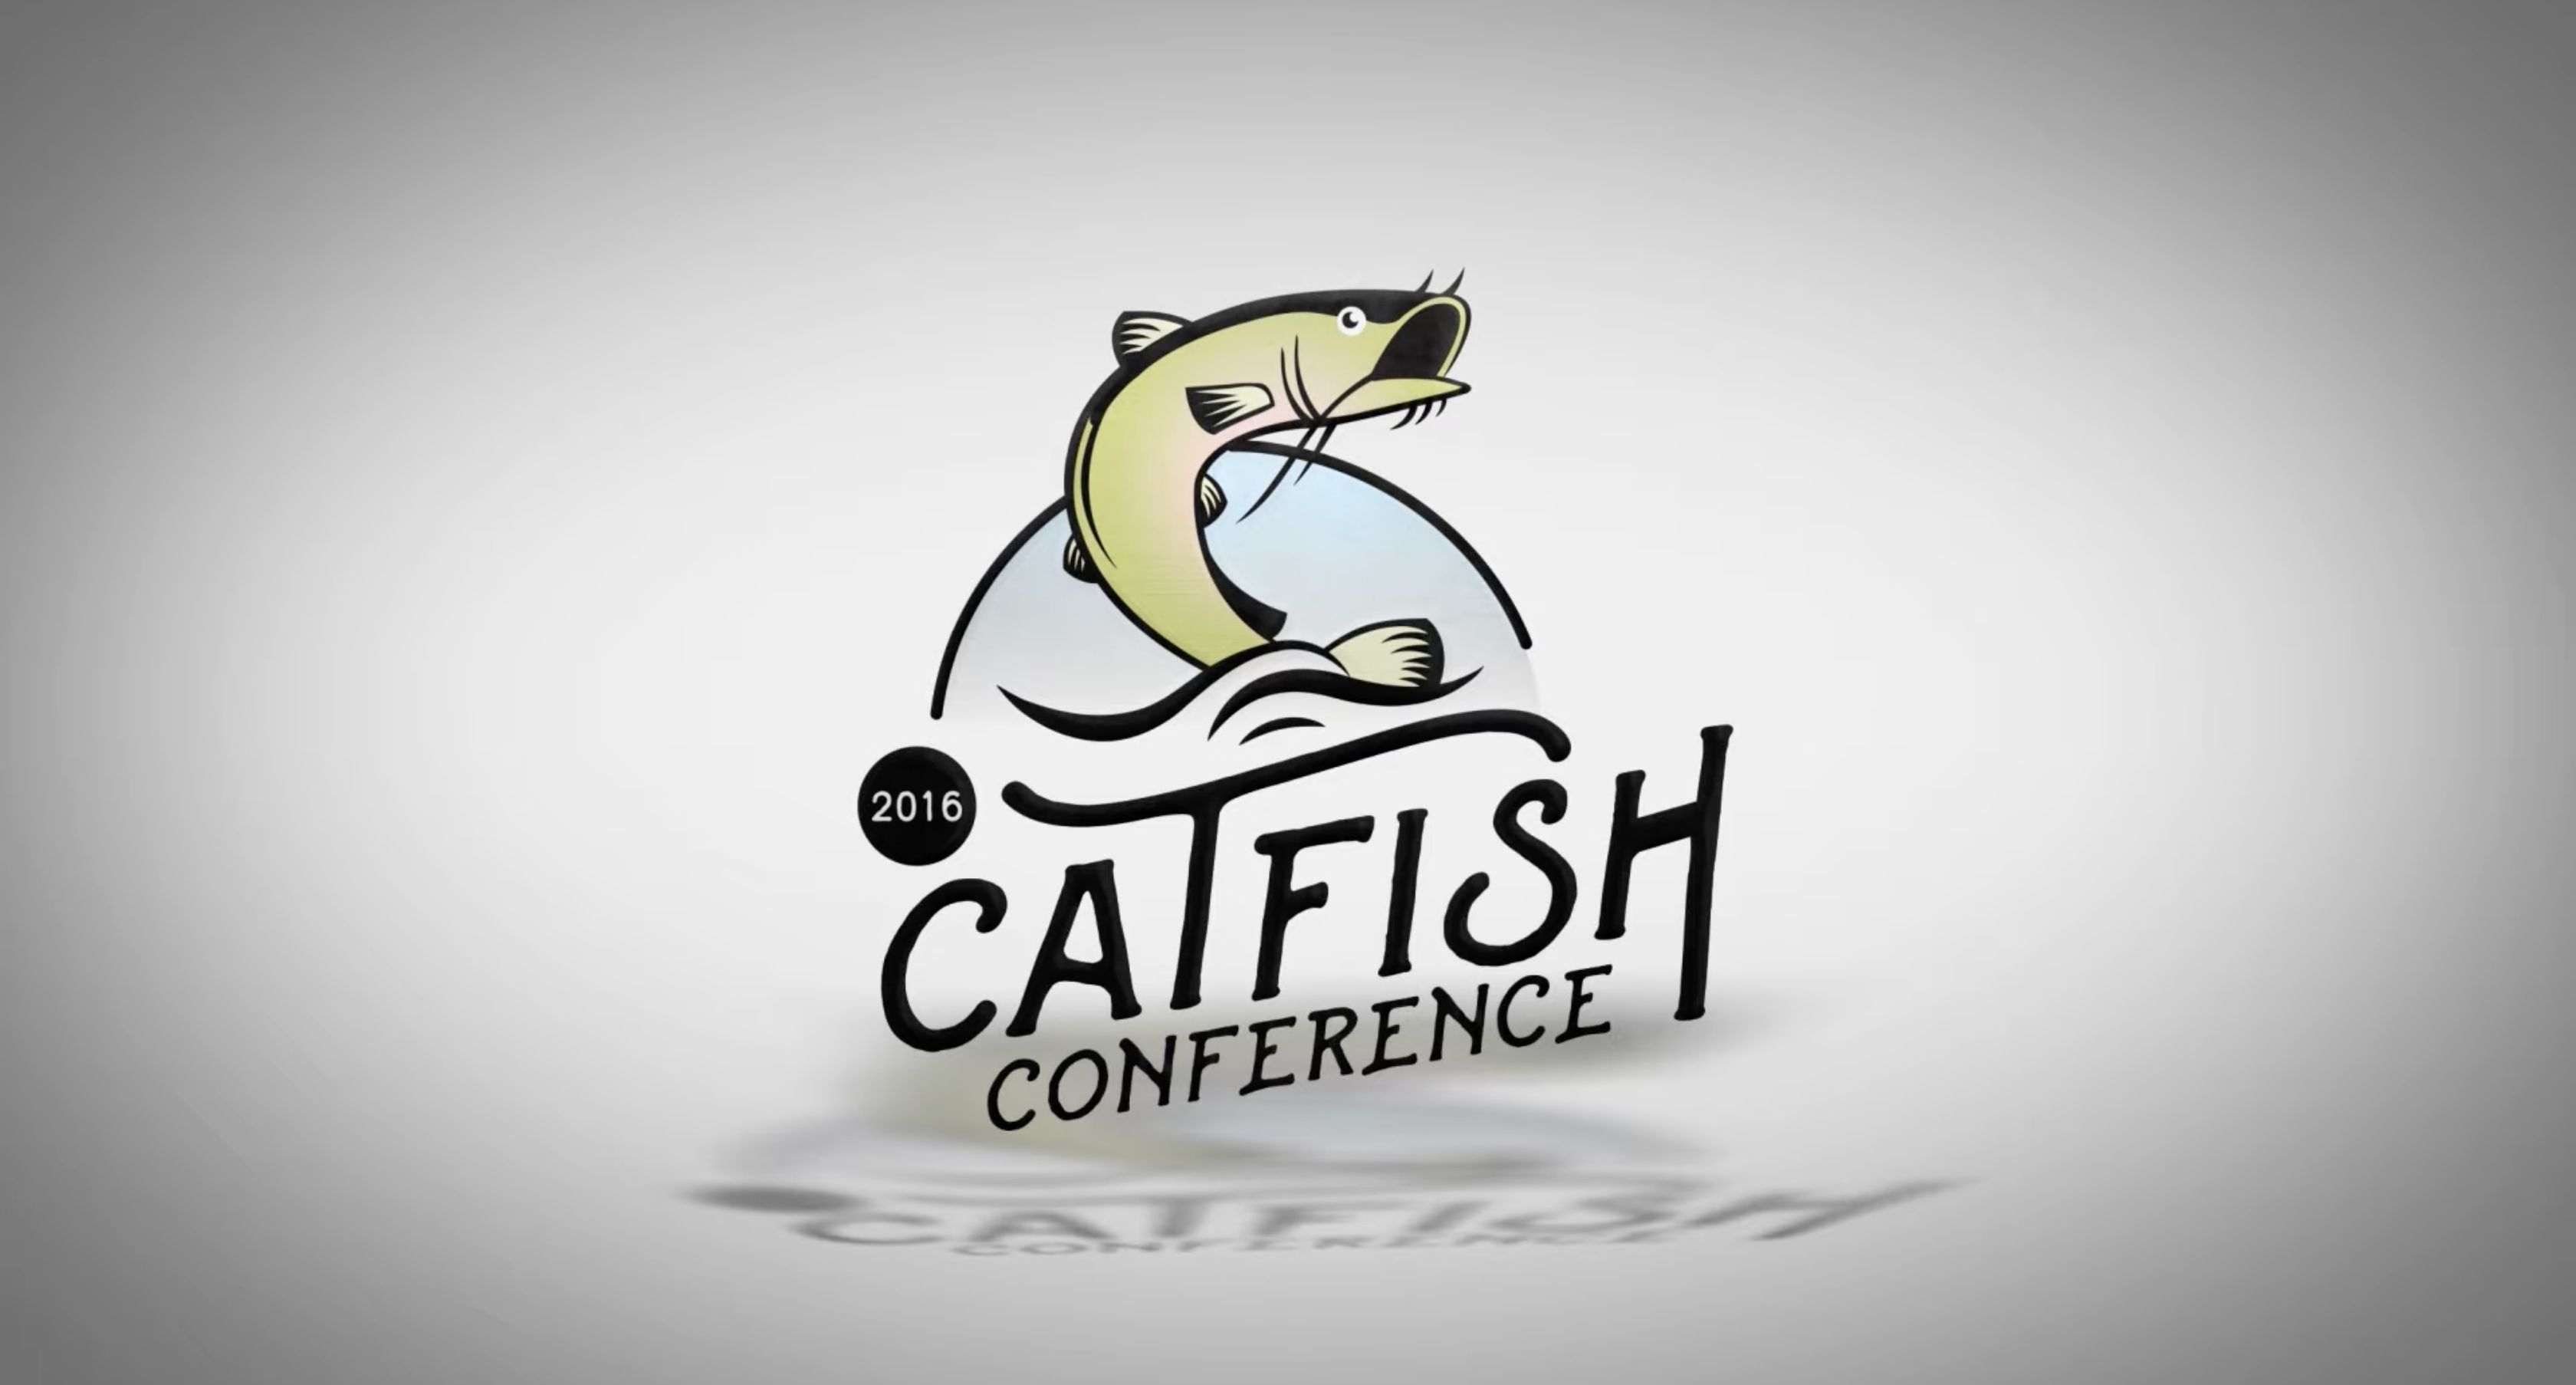 """catfish conference 2016 Larry Muse: Proven Tactics to Catch the """"Big Ones"""" 